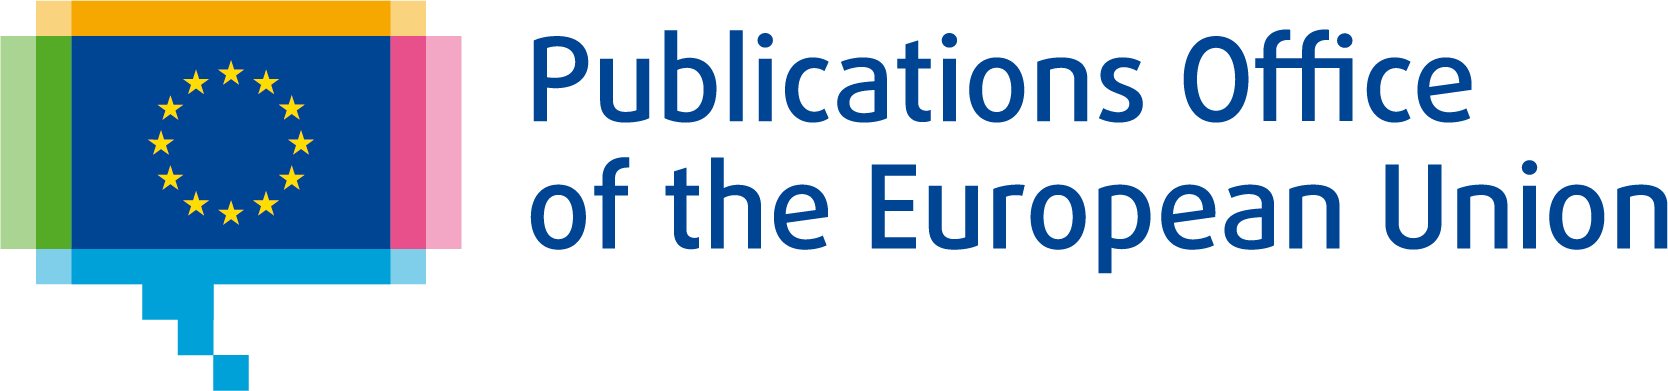 Publications Office of the European Union